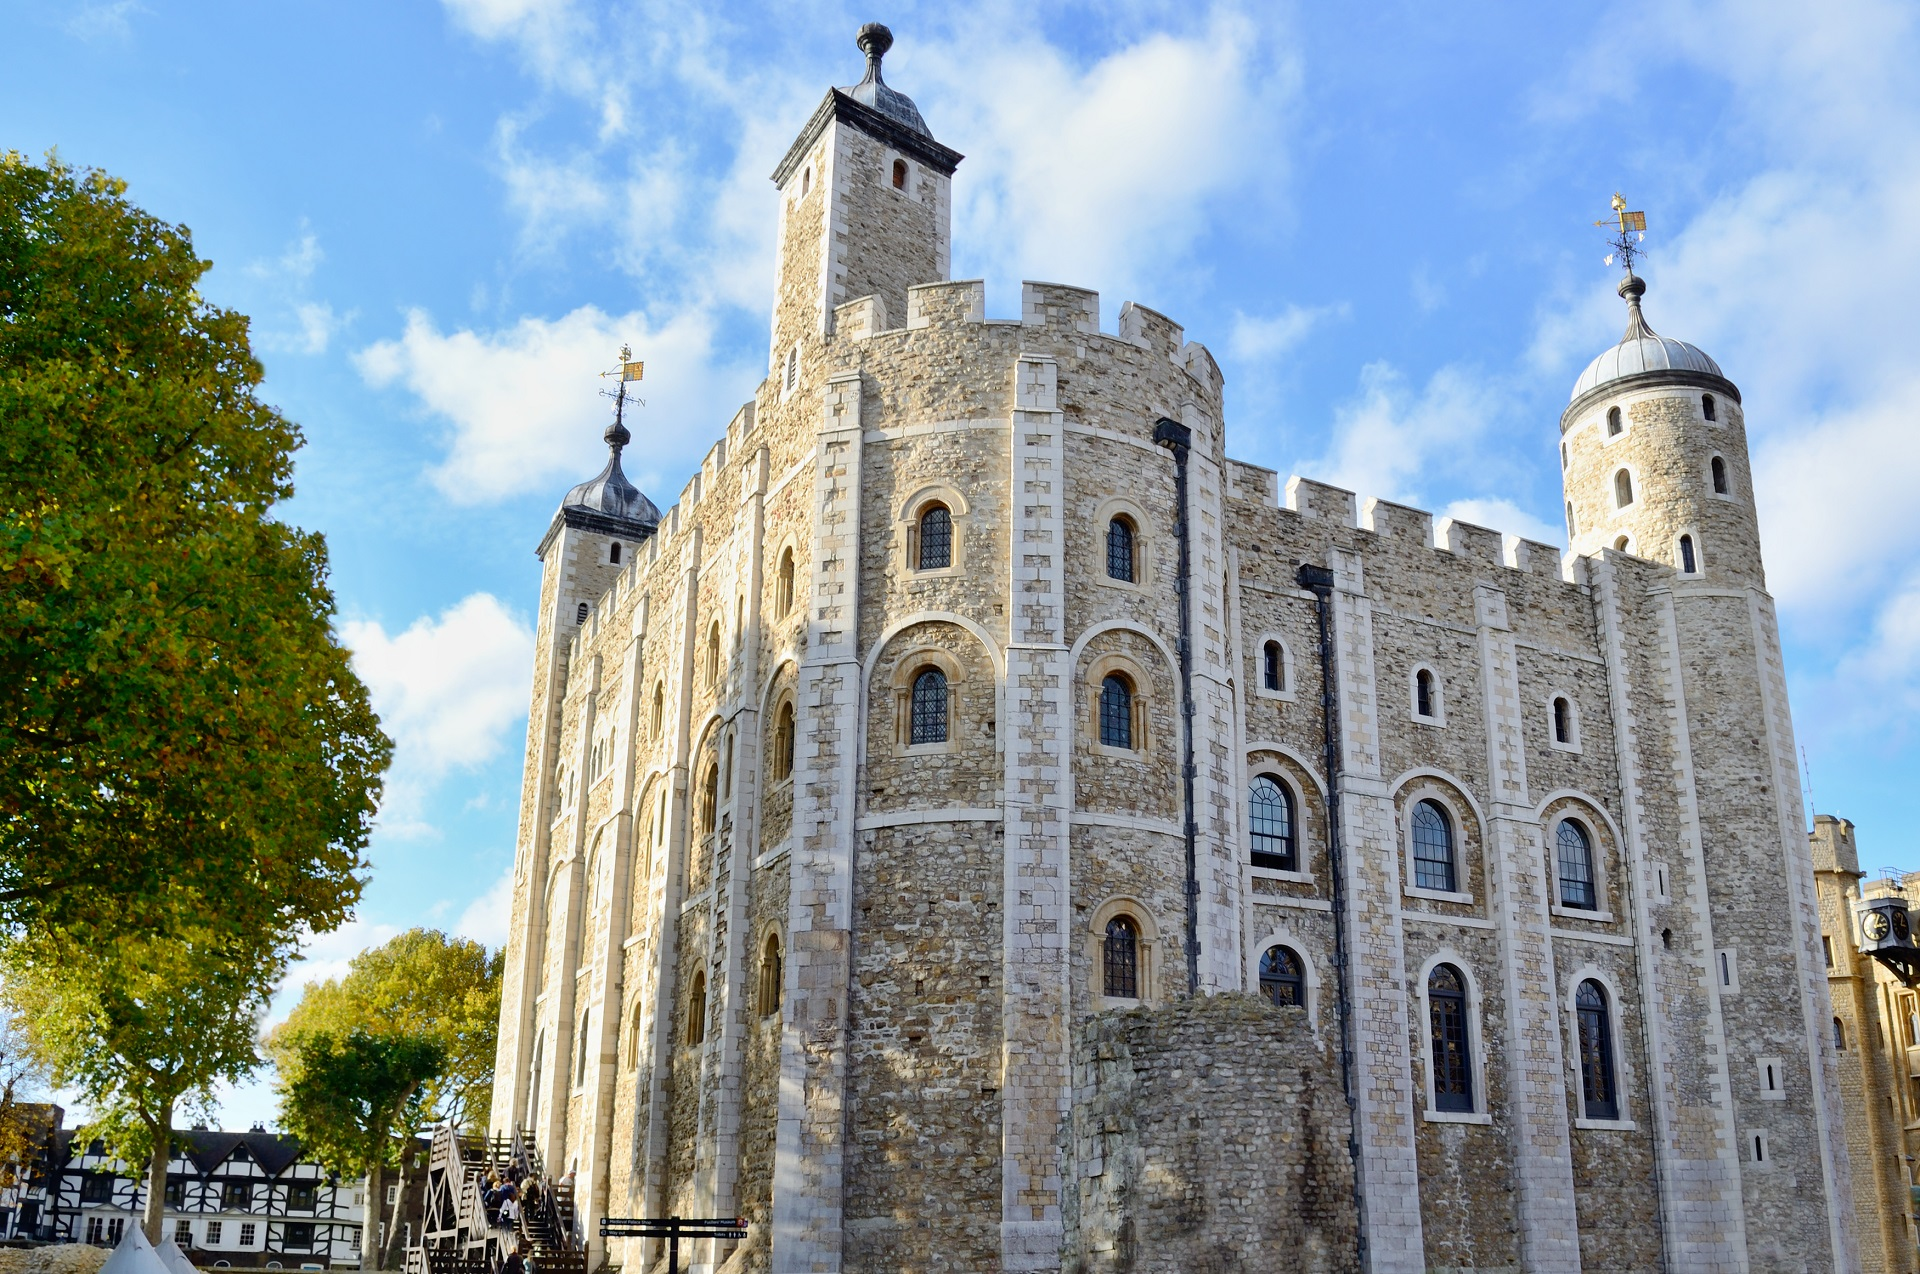 tower of london The tower of london, officially her majesty's royal palace and fortress of the tower of london, is a historic castle located on the north bank of the .